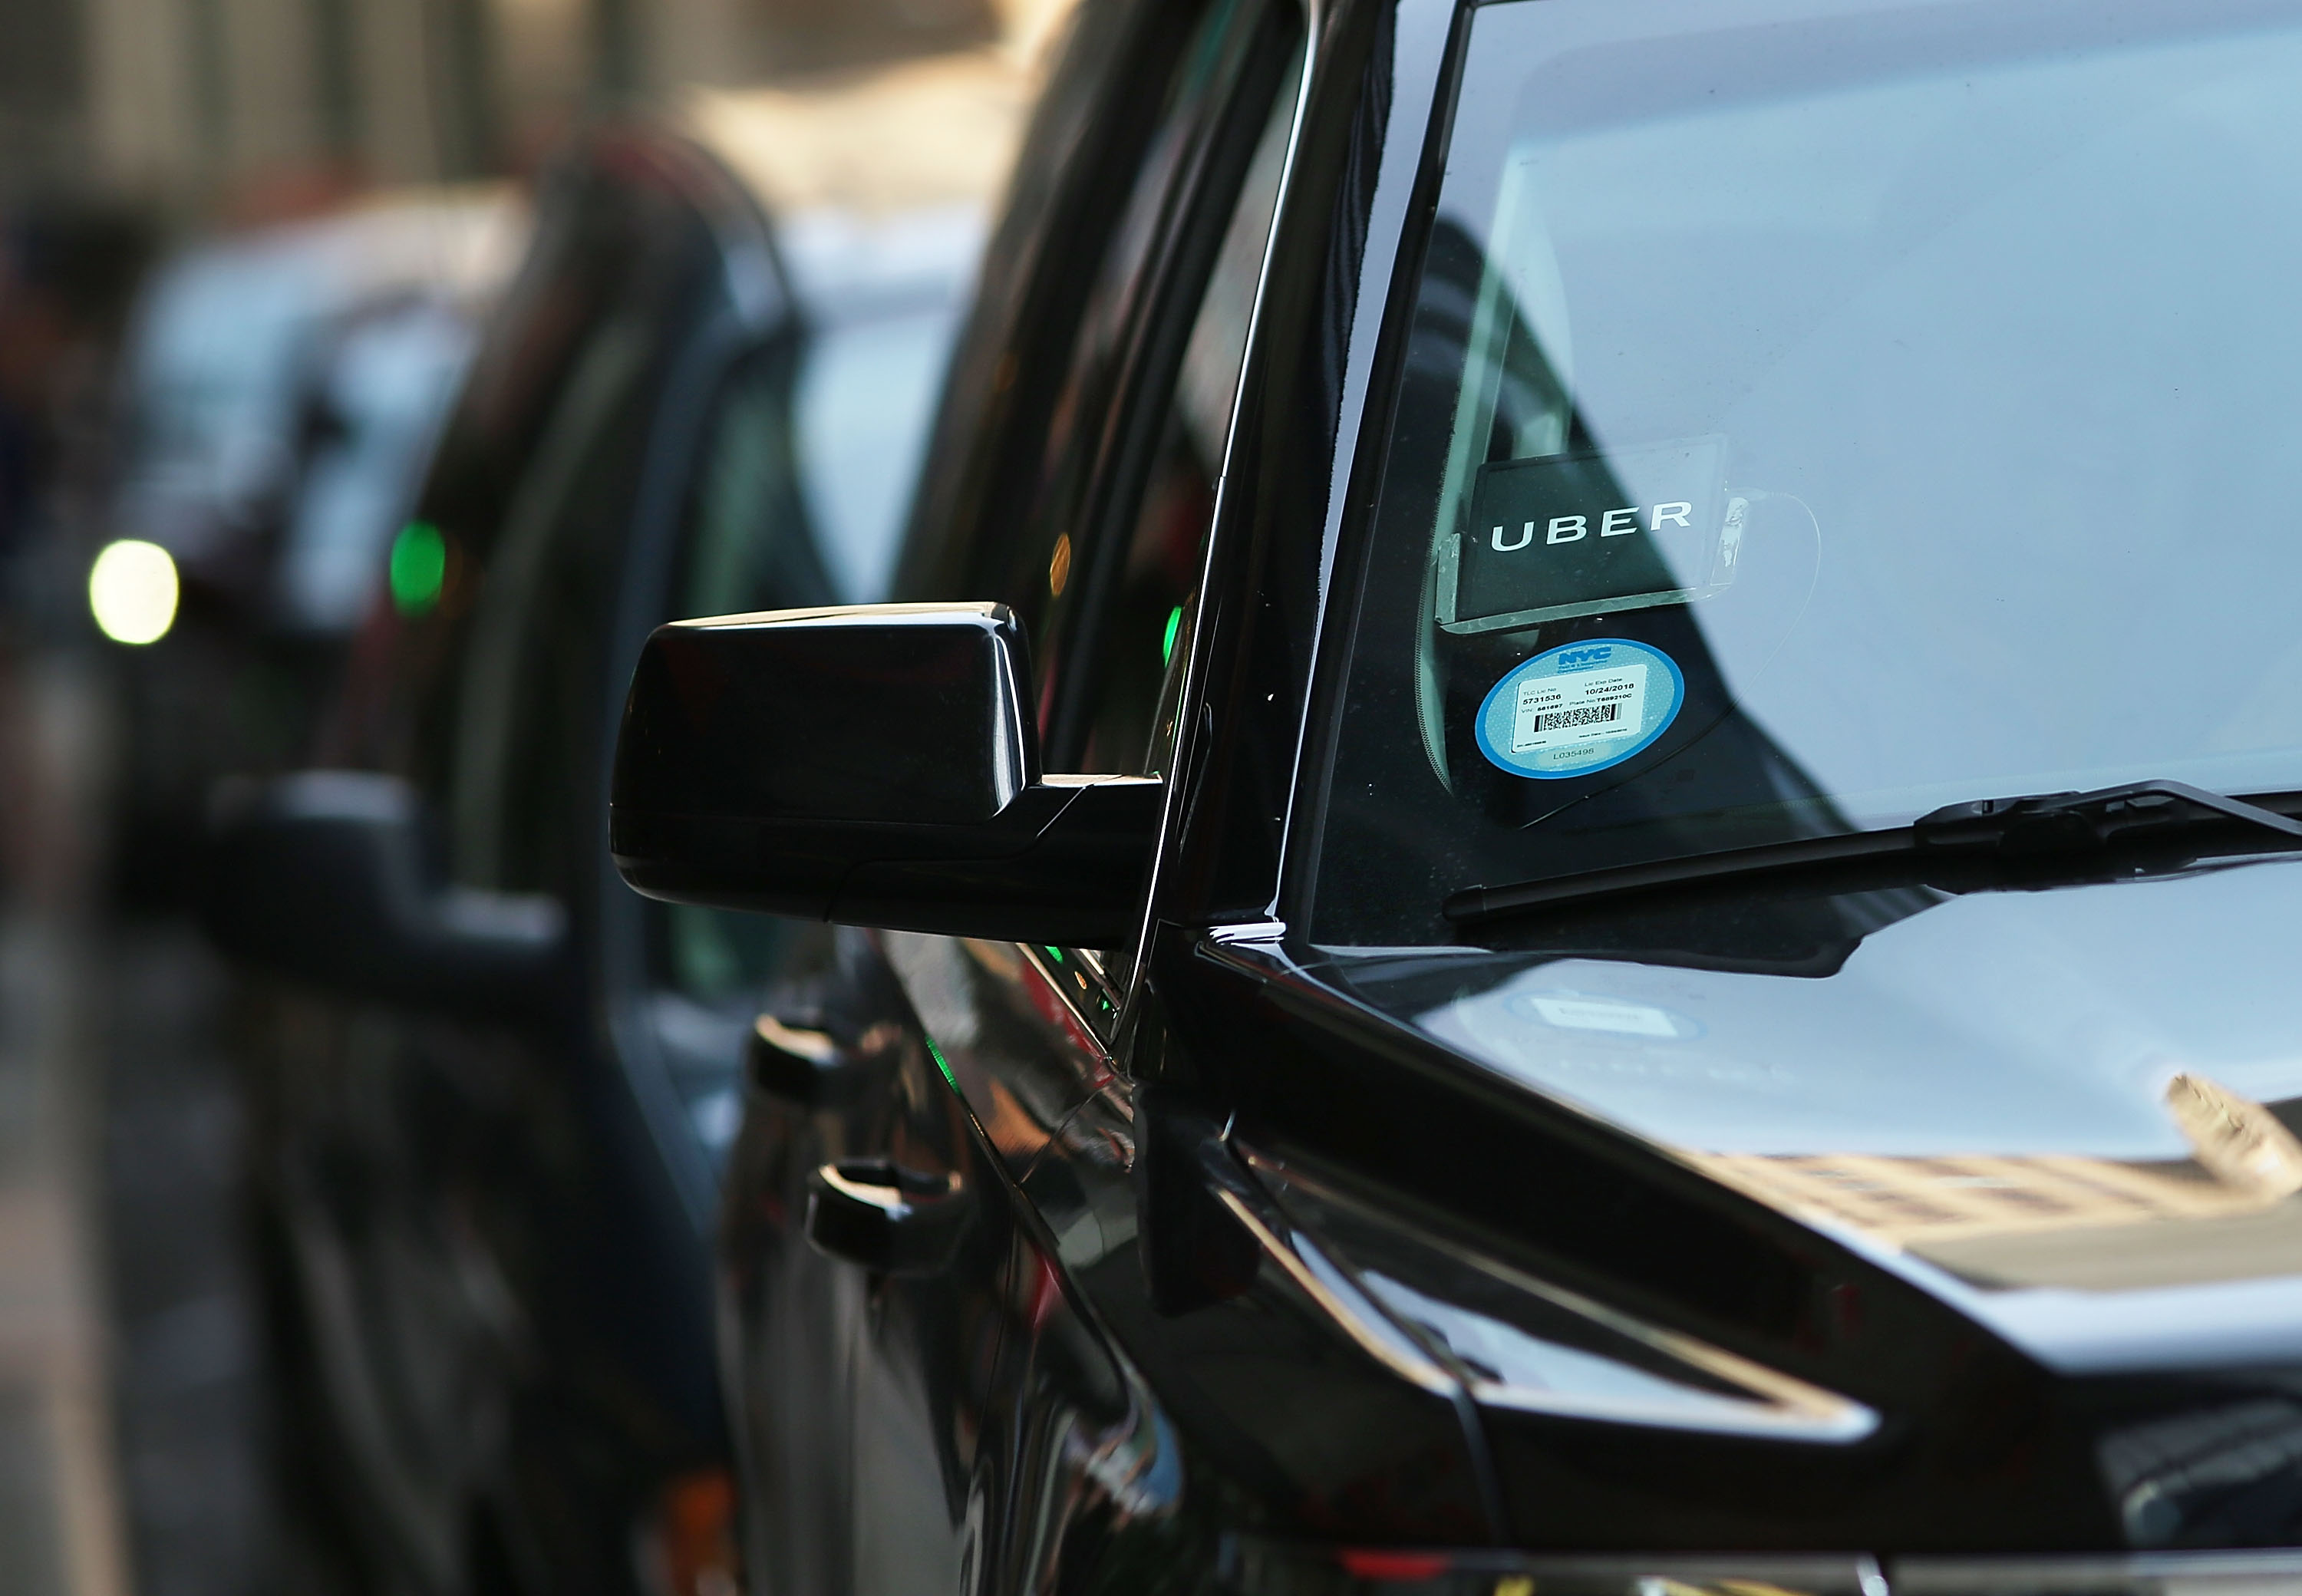 Uber to pay $3M to settle driver service fees class action in NY